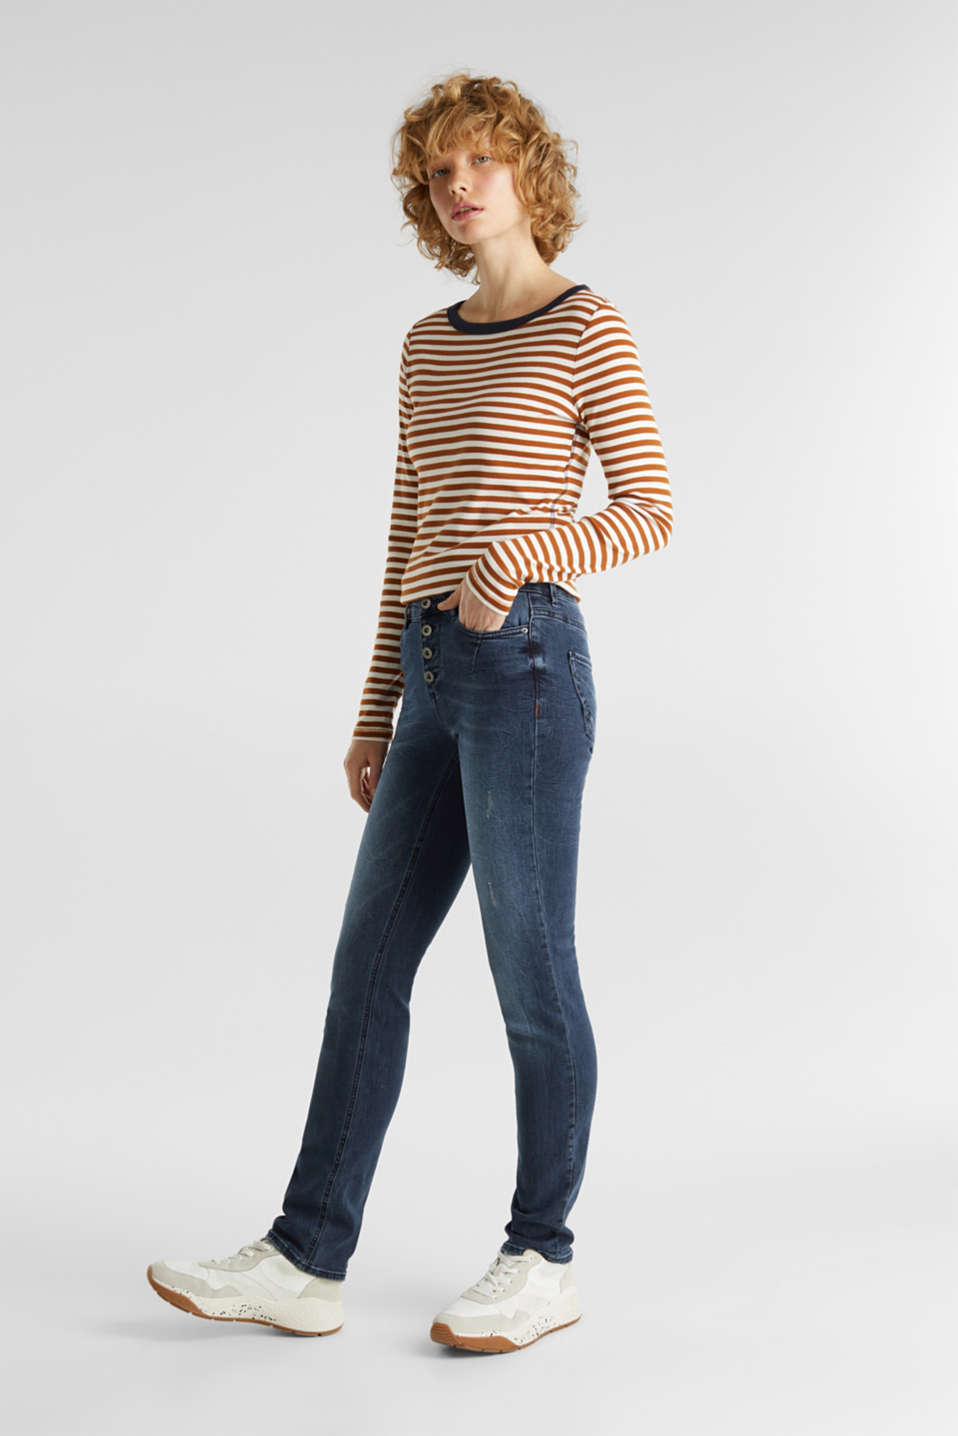 Vintage-style jeans with a button fly